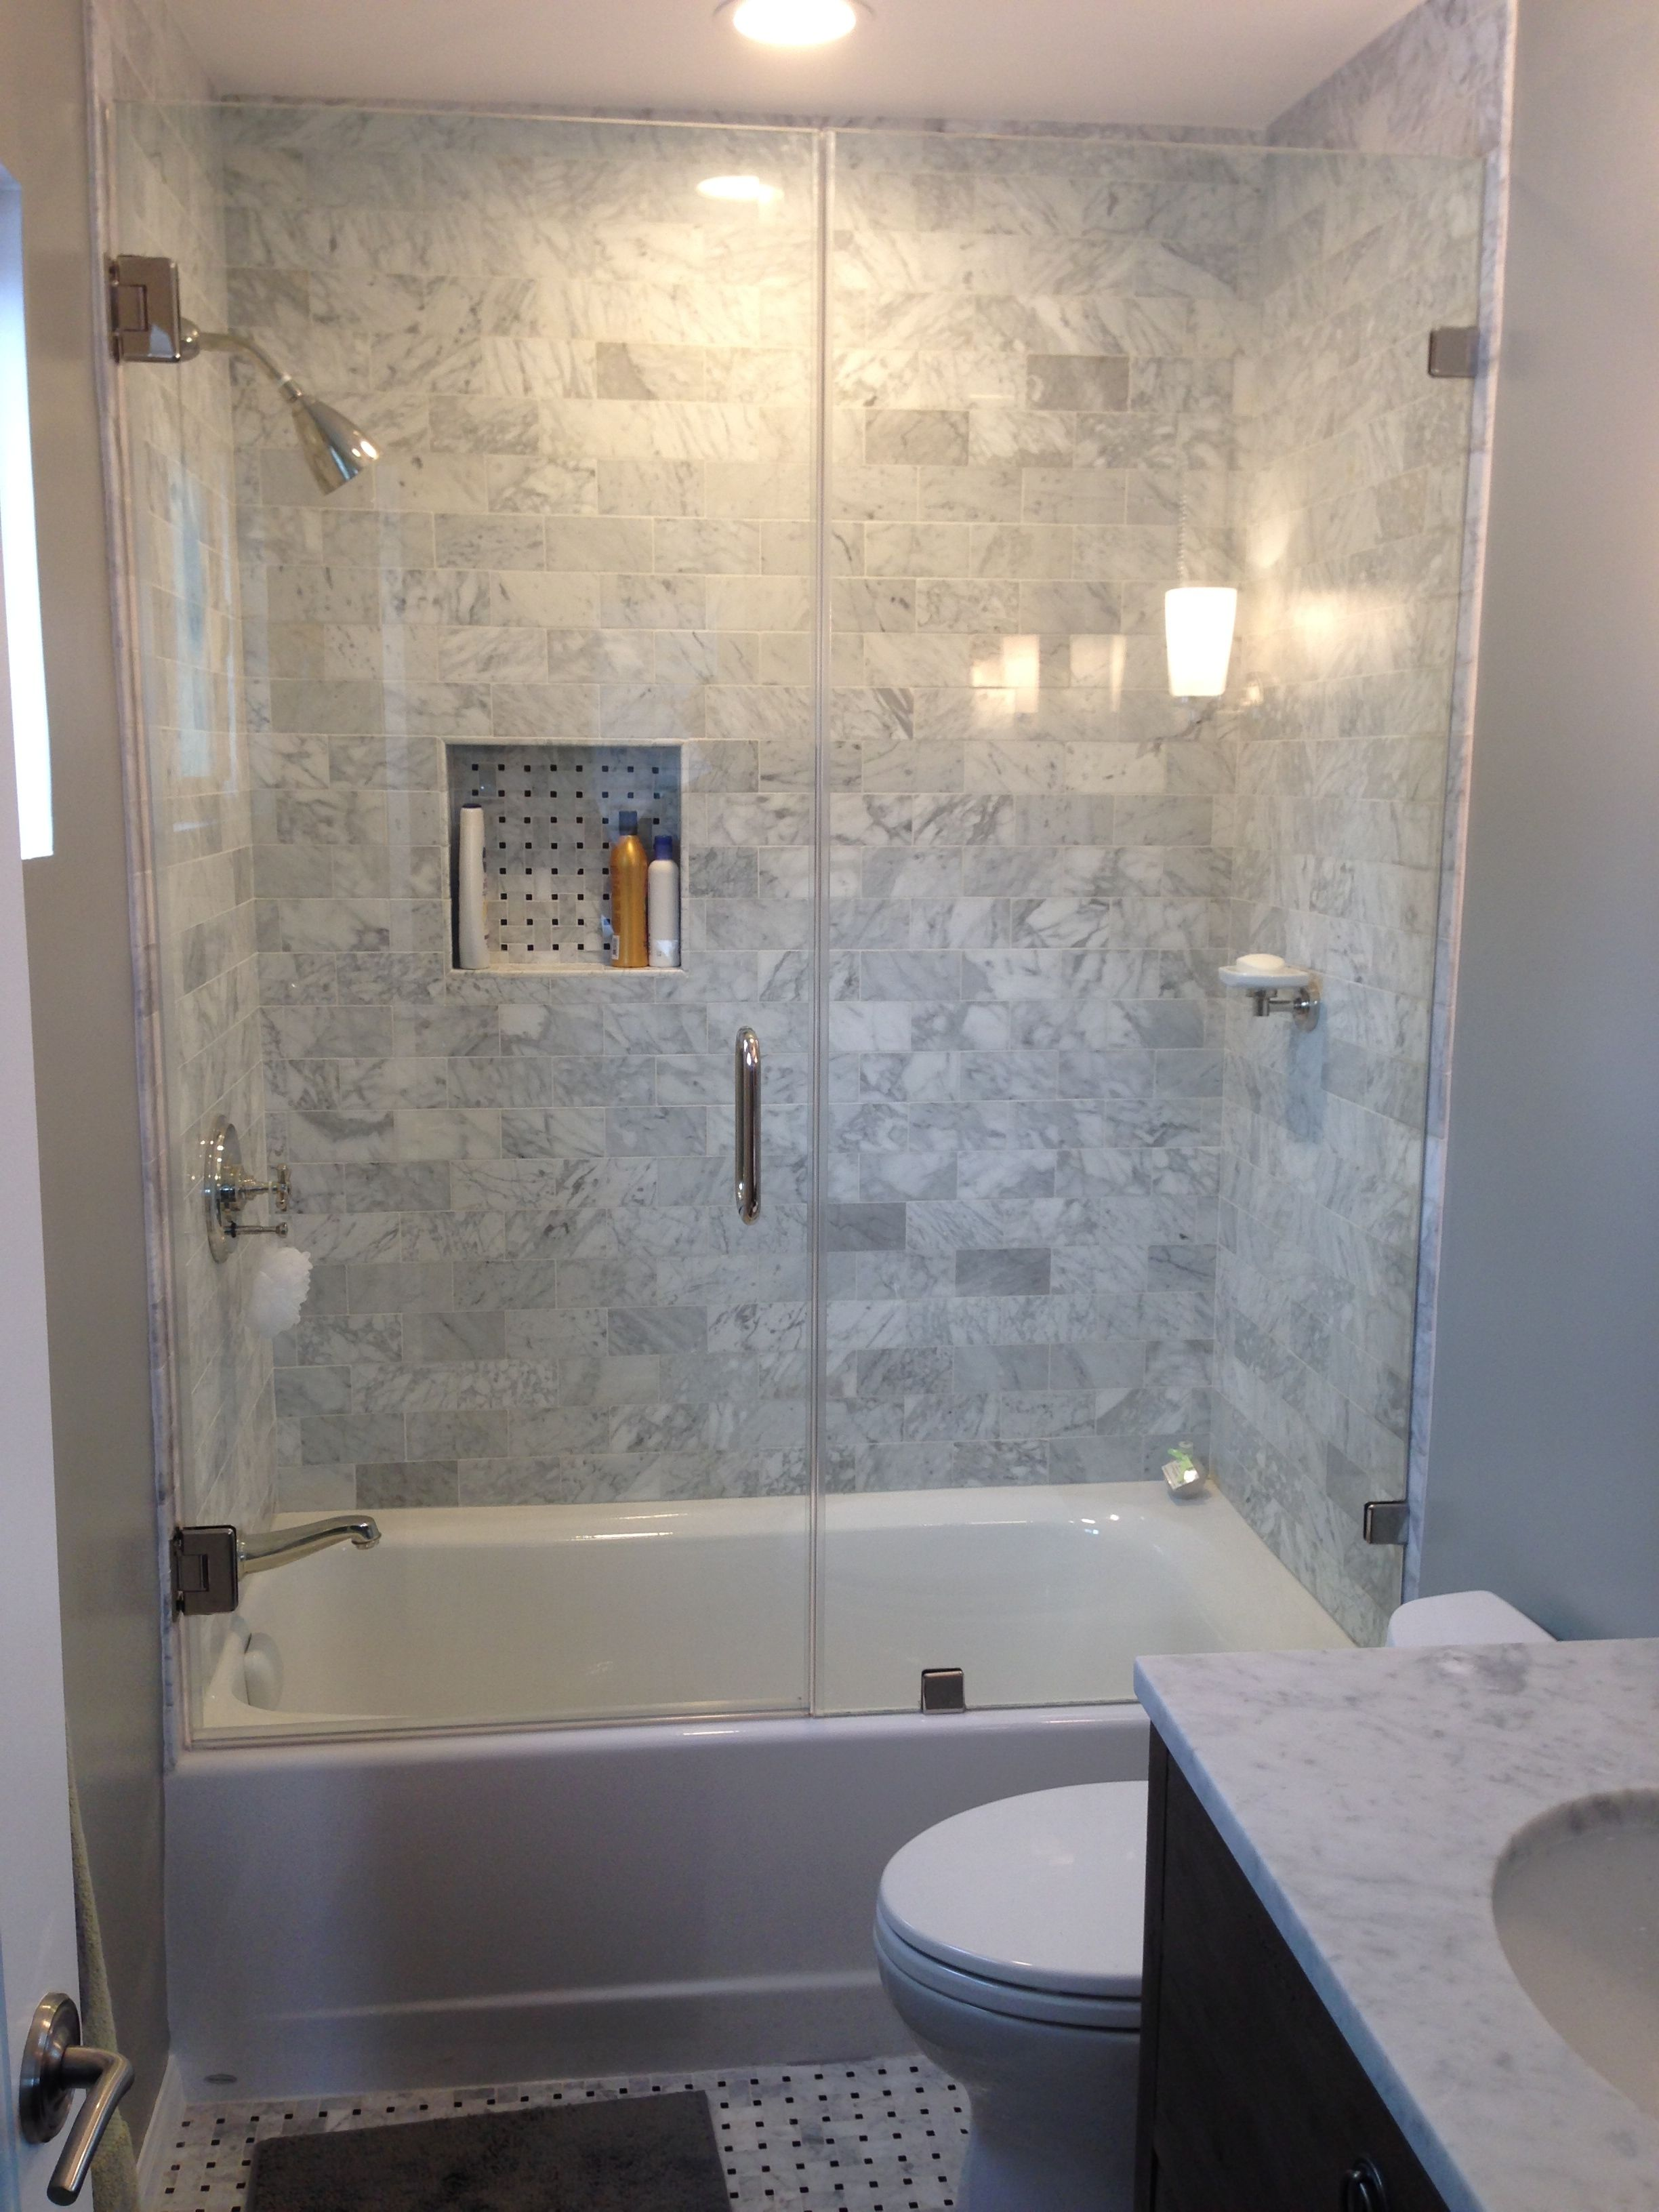 Shower Frameless Bathtub Shower Doors Power Up Glass Bathroom Within